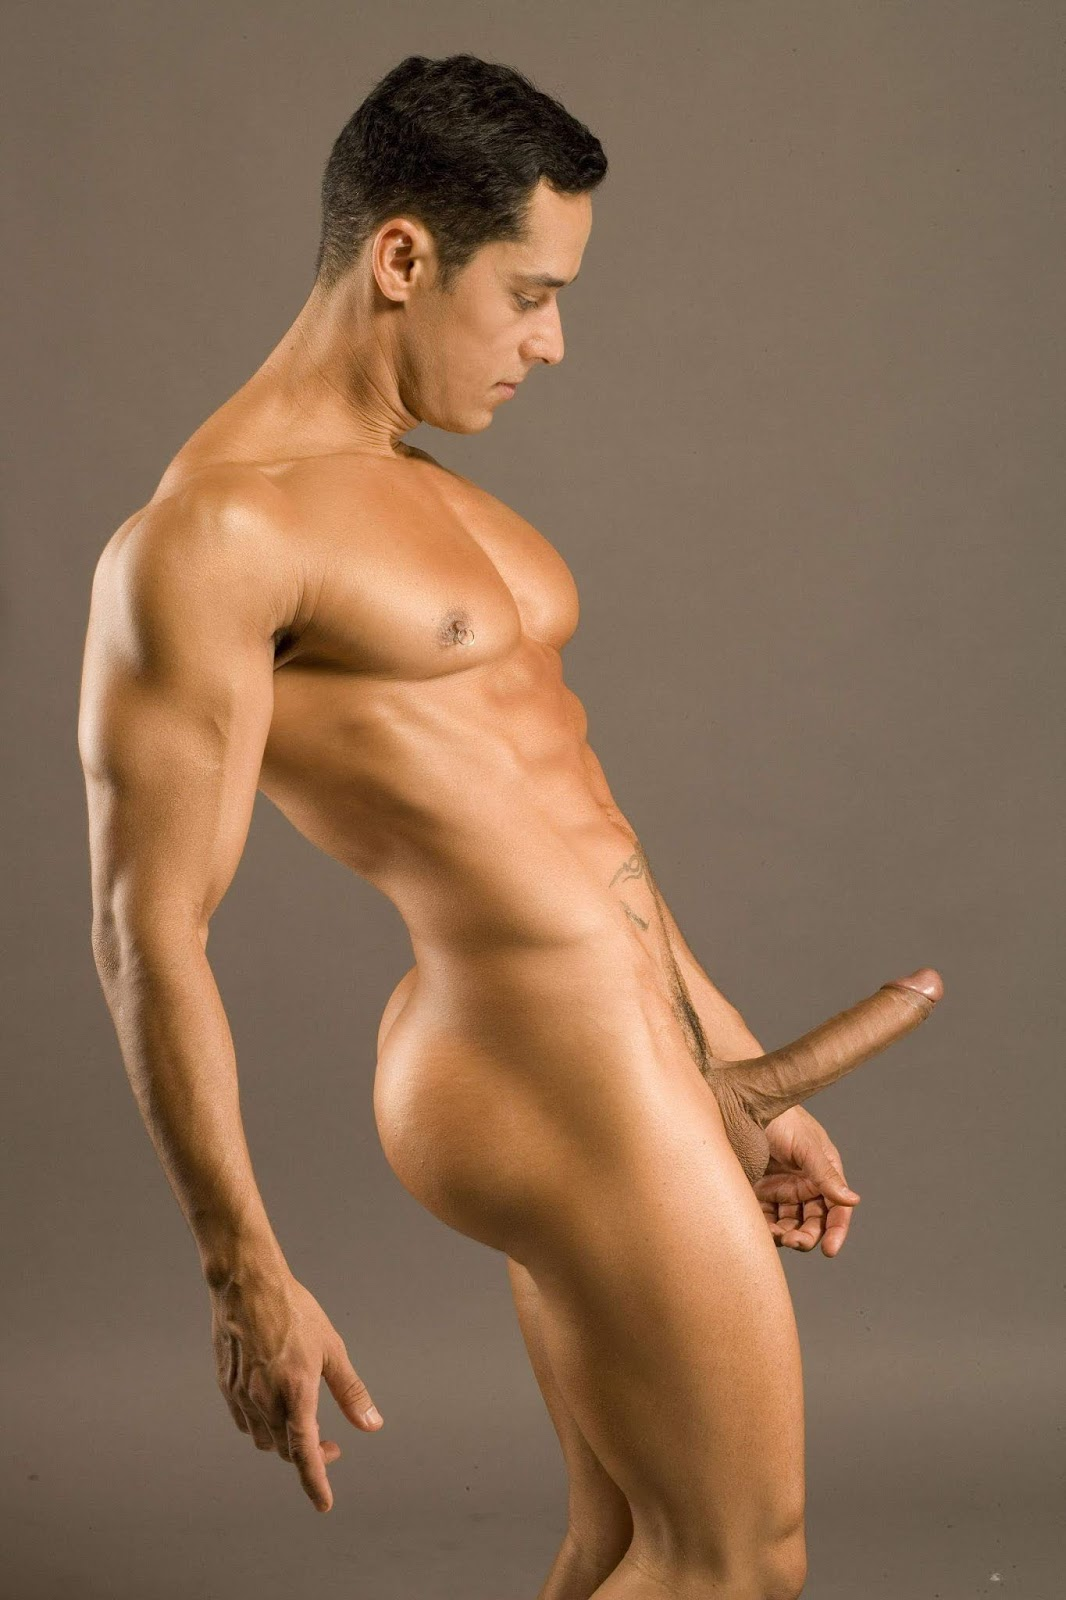 asian-guy-posing-in-playgirl